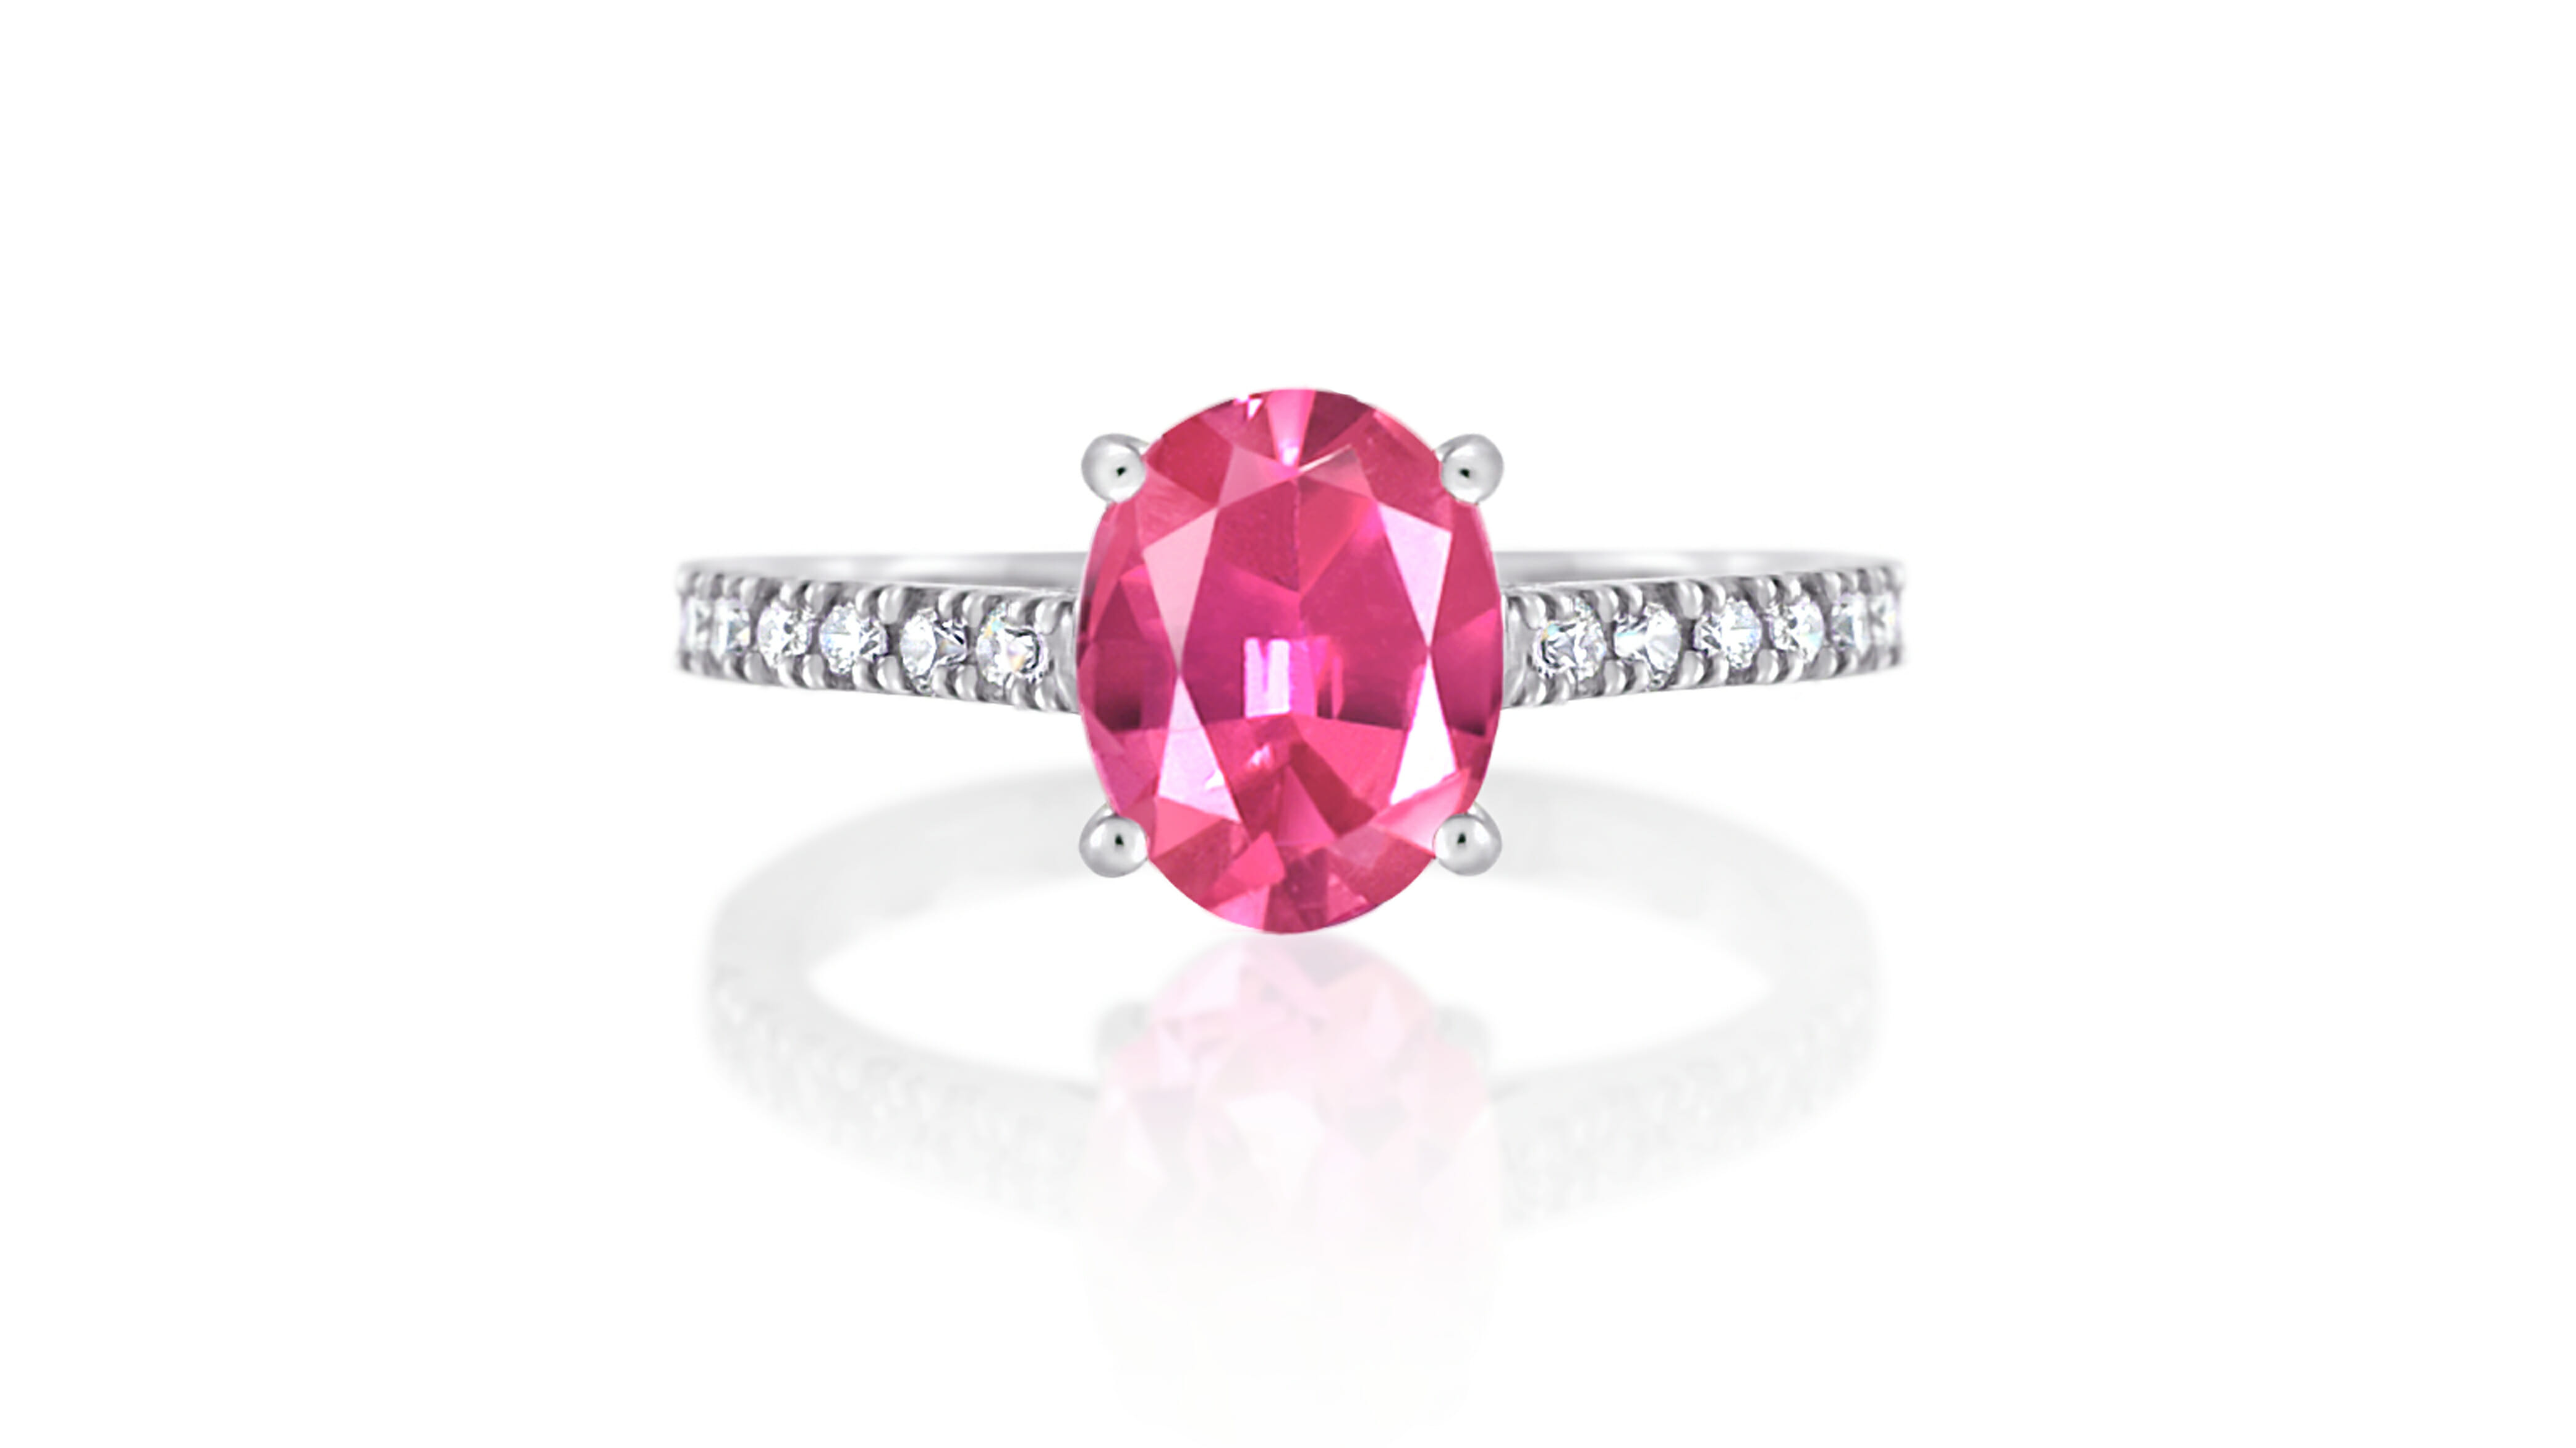 Pink oval tourmaline coloured gemstone ring with diamonds extending down the band | Set in 18 carat white gold